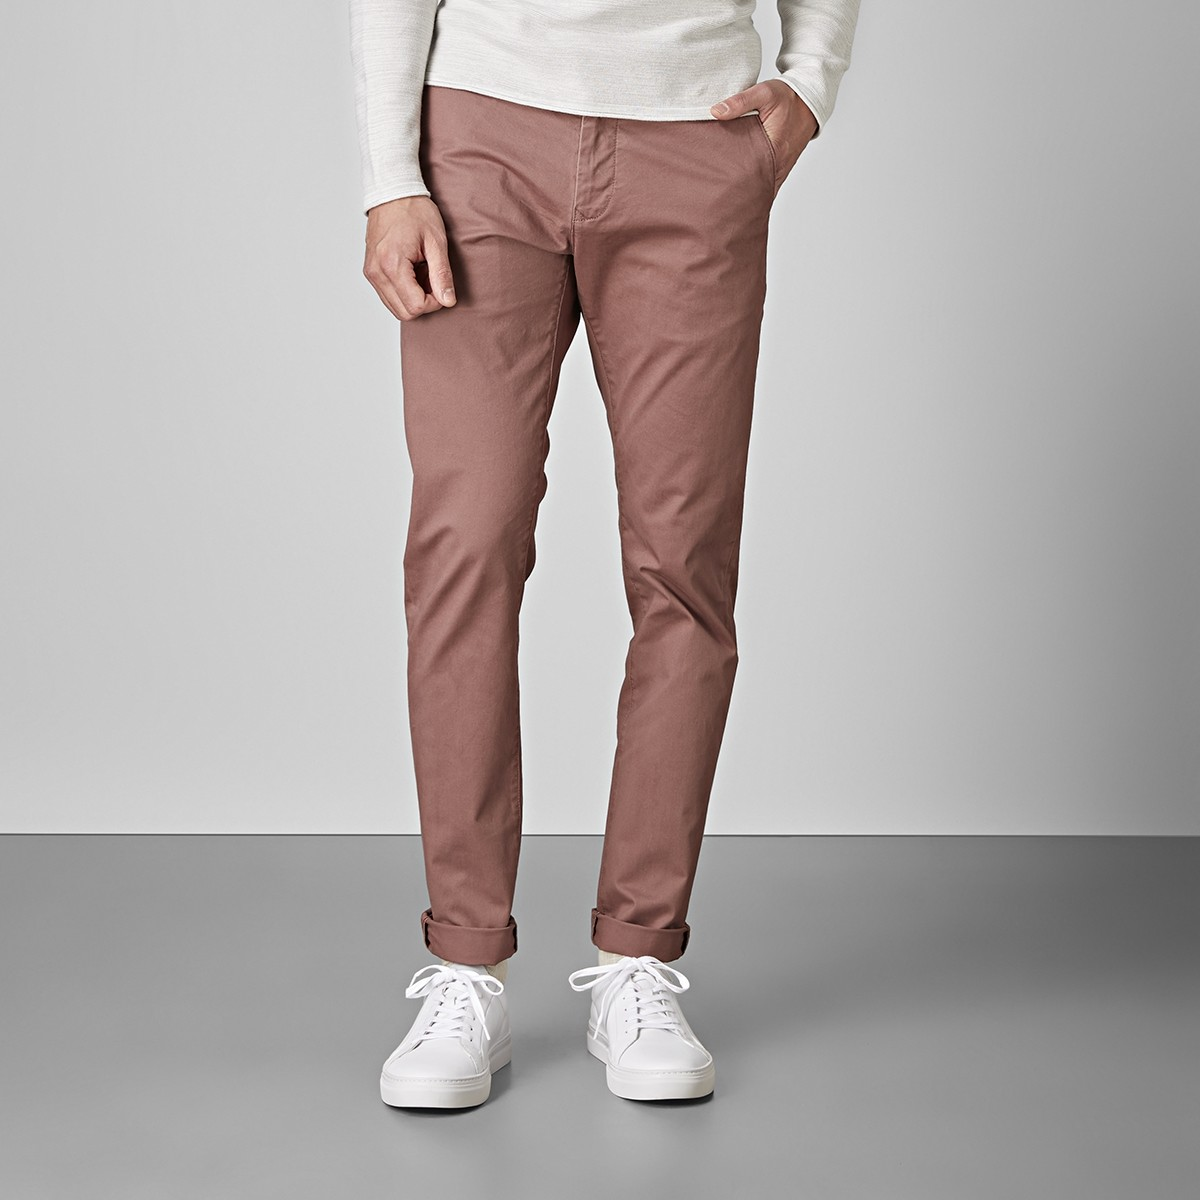 Bowery Stretch Chinos Vinröd 2   East West   Brothers.se